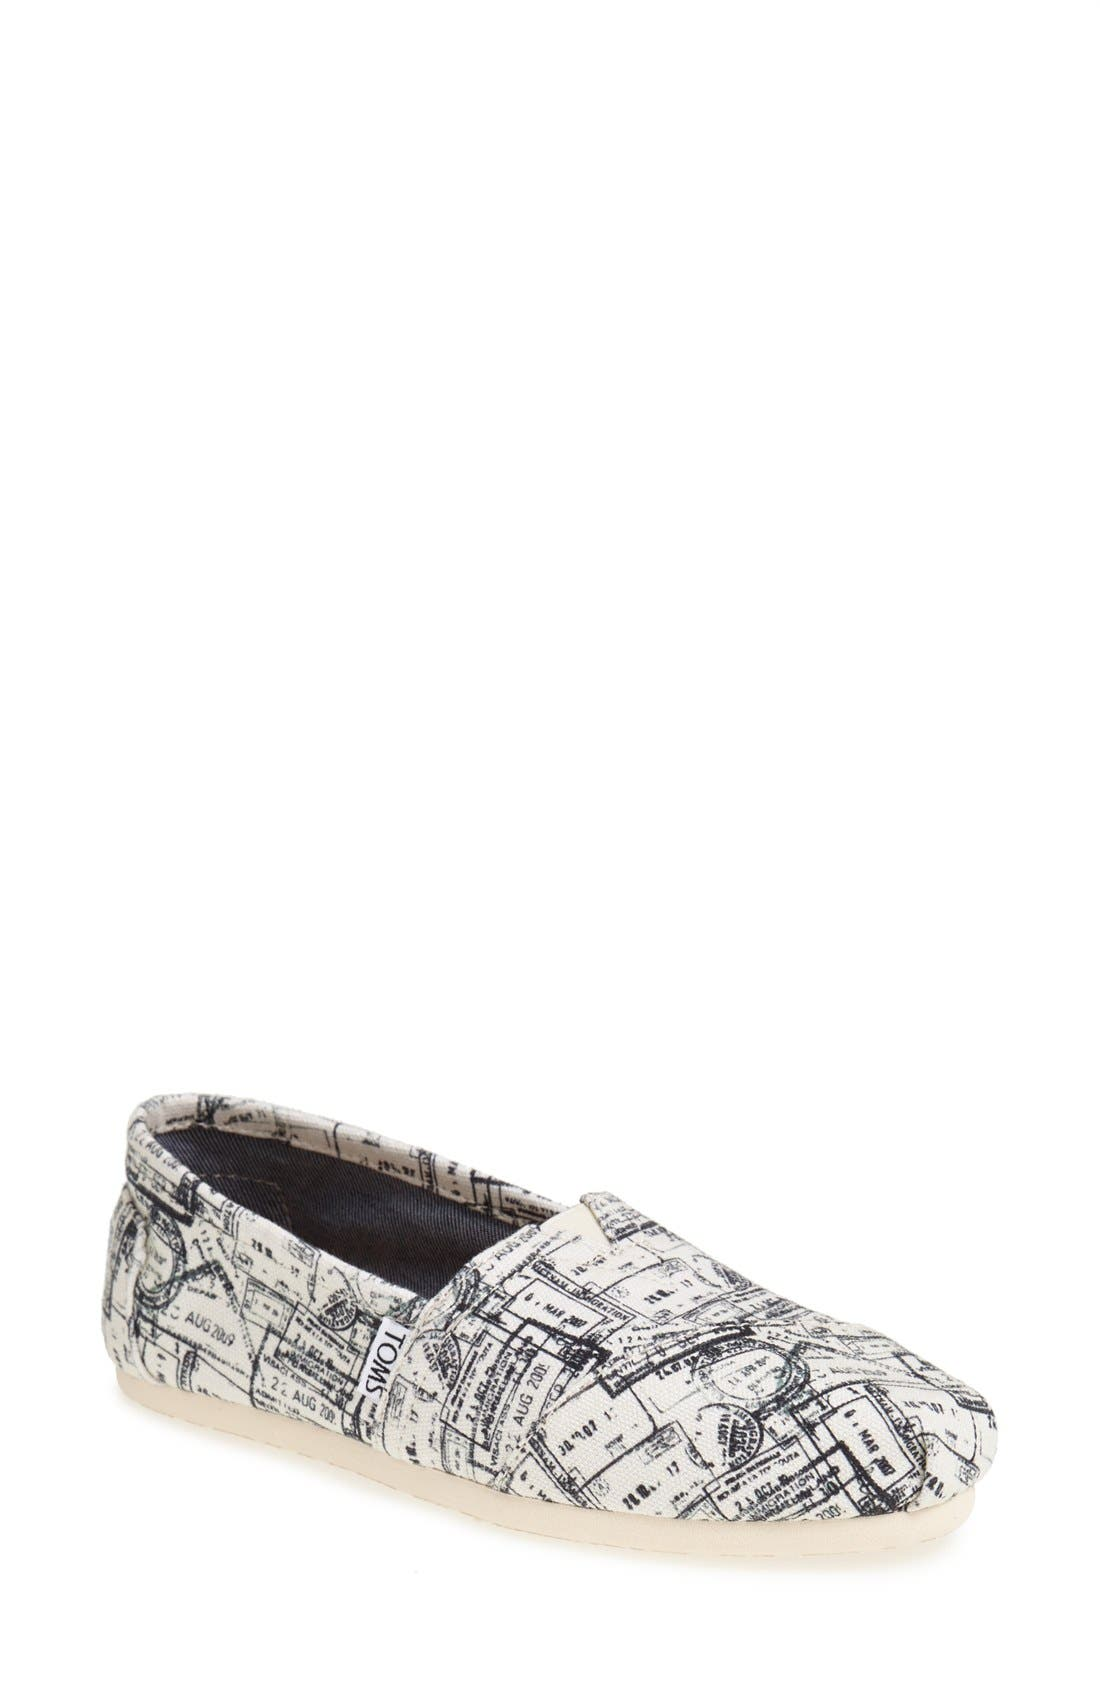 Alternate Image 1 Selected - TOMS 'Classic - Passport Stamps' Slip-On (Nordstrom Exclusive)(Women)